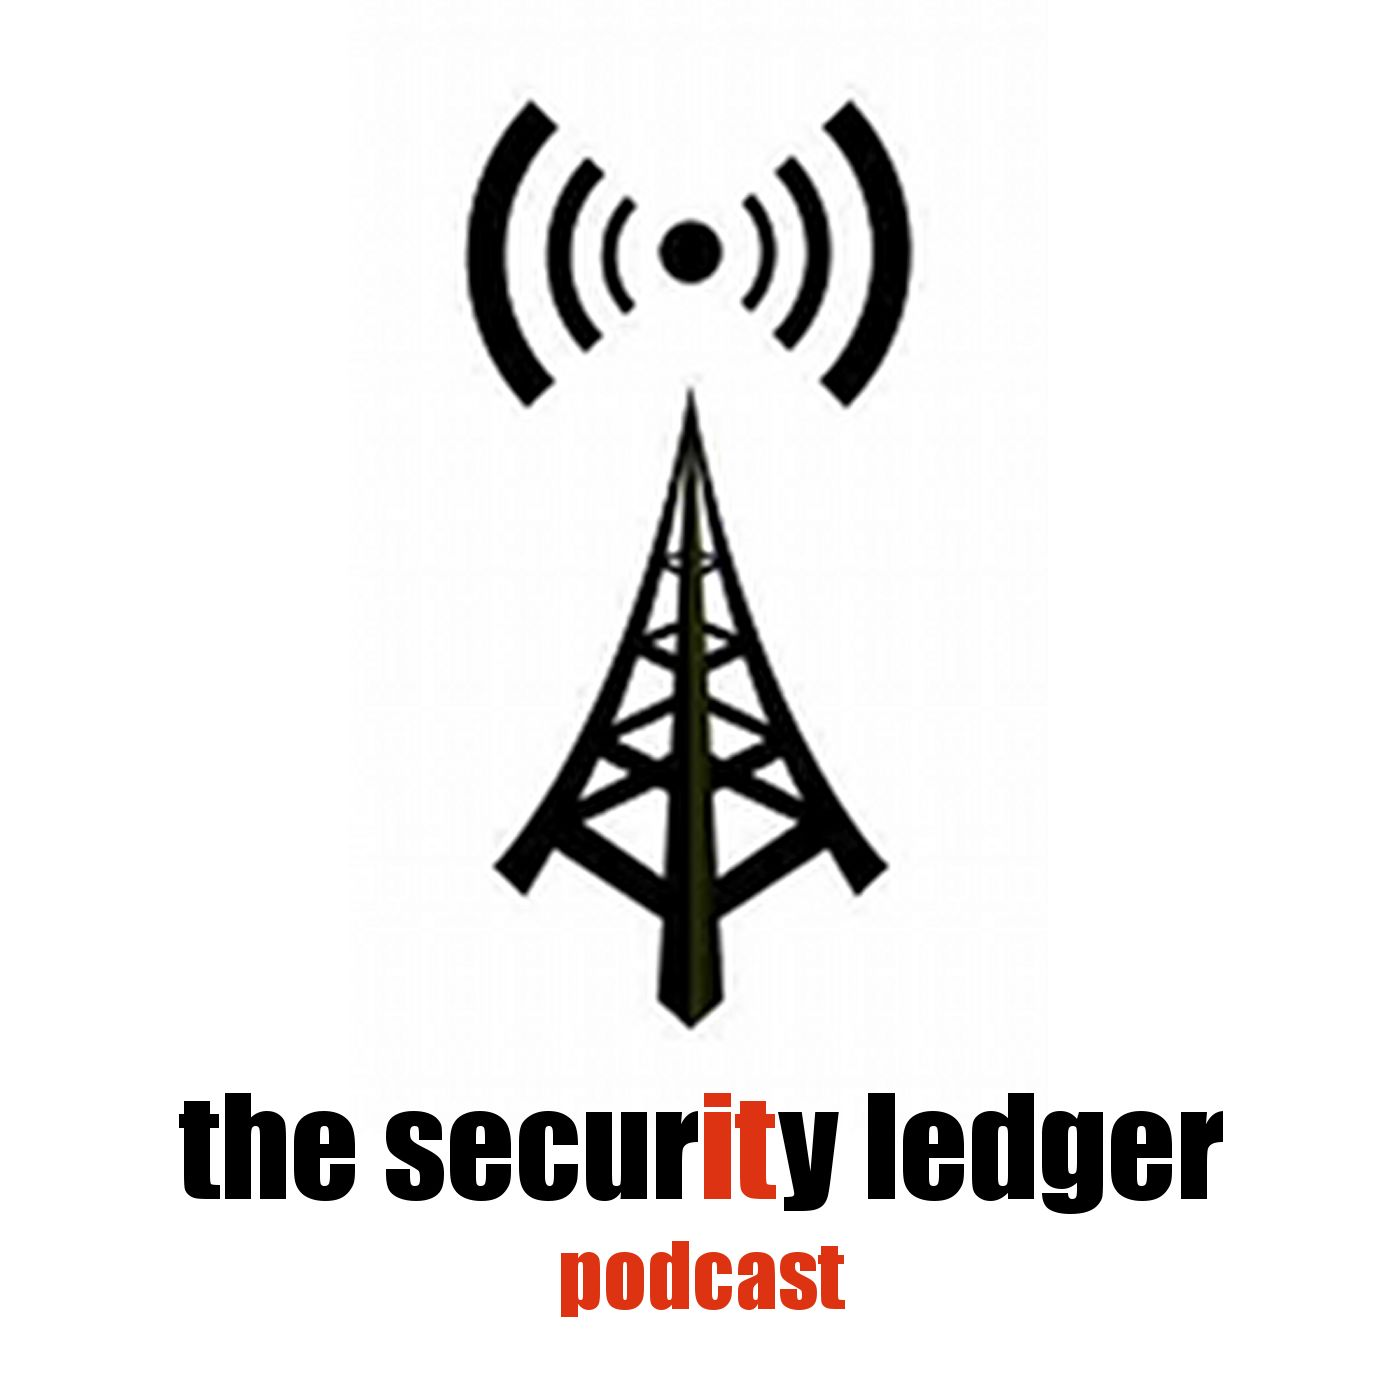 Episode 174: GEs Very Bad Day  Unpacking the MDHex Vulnerabilities